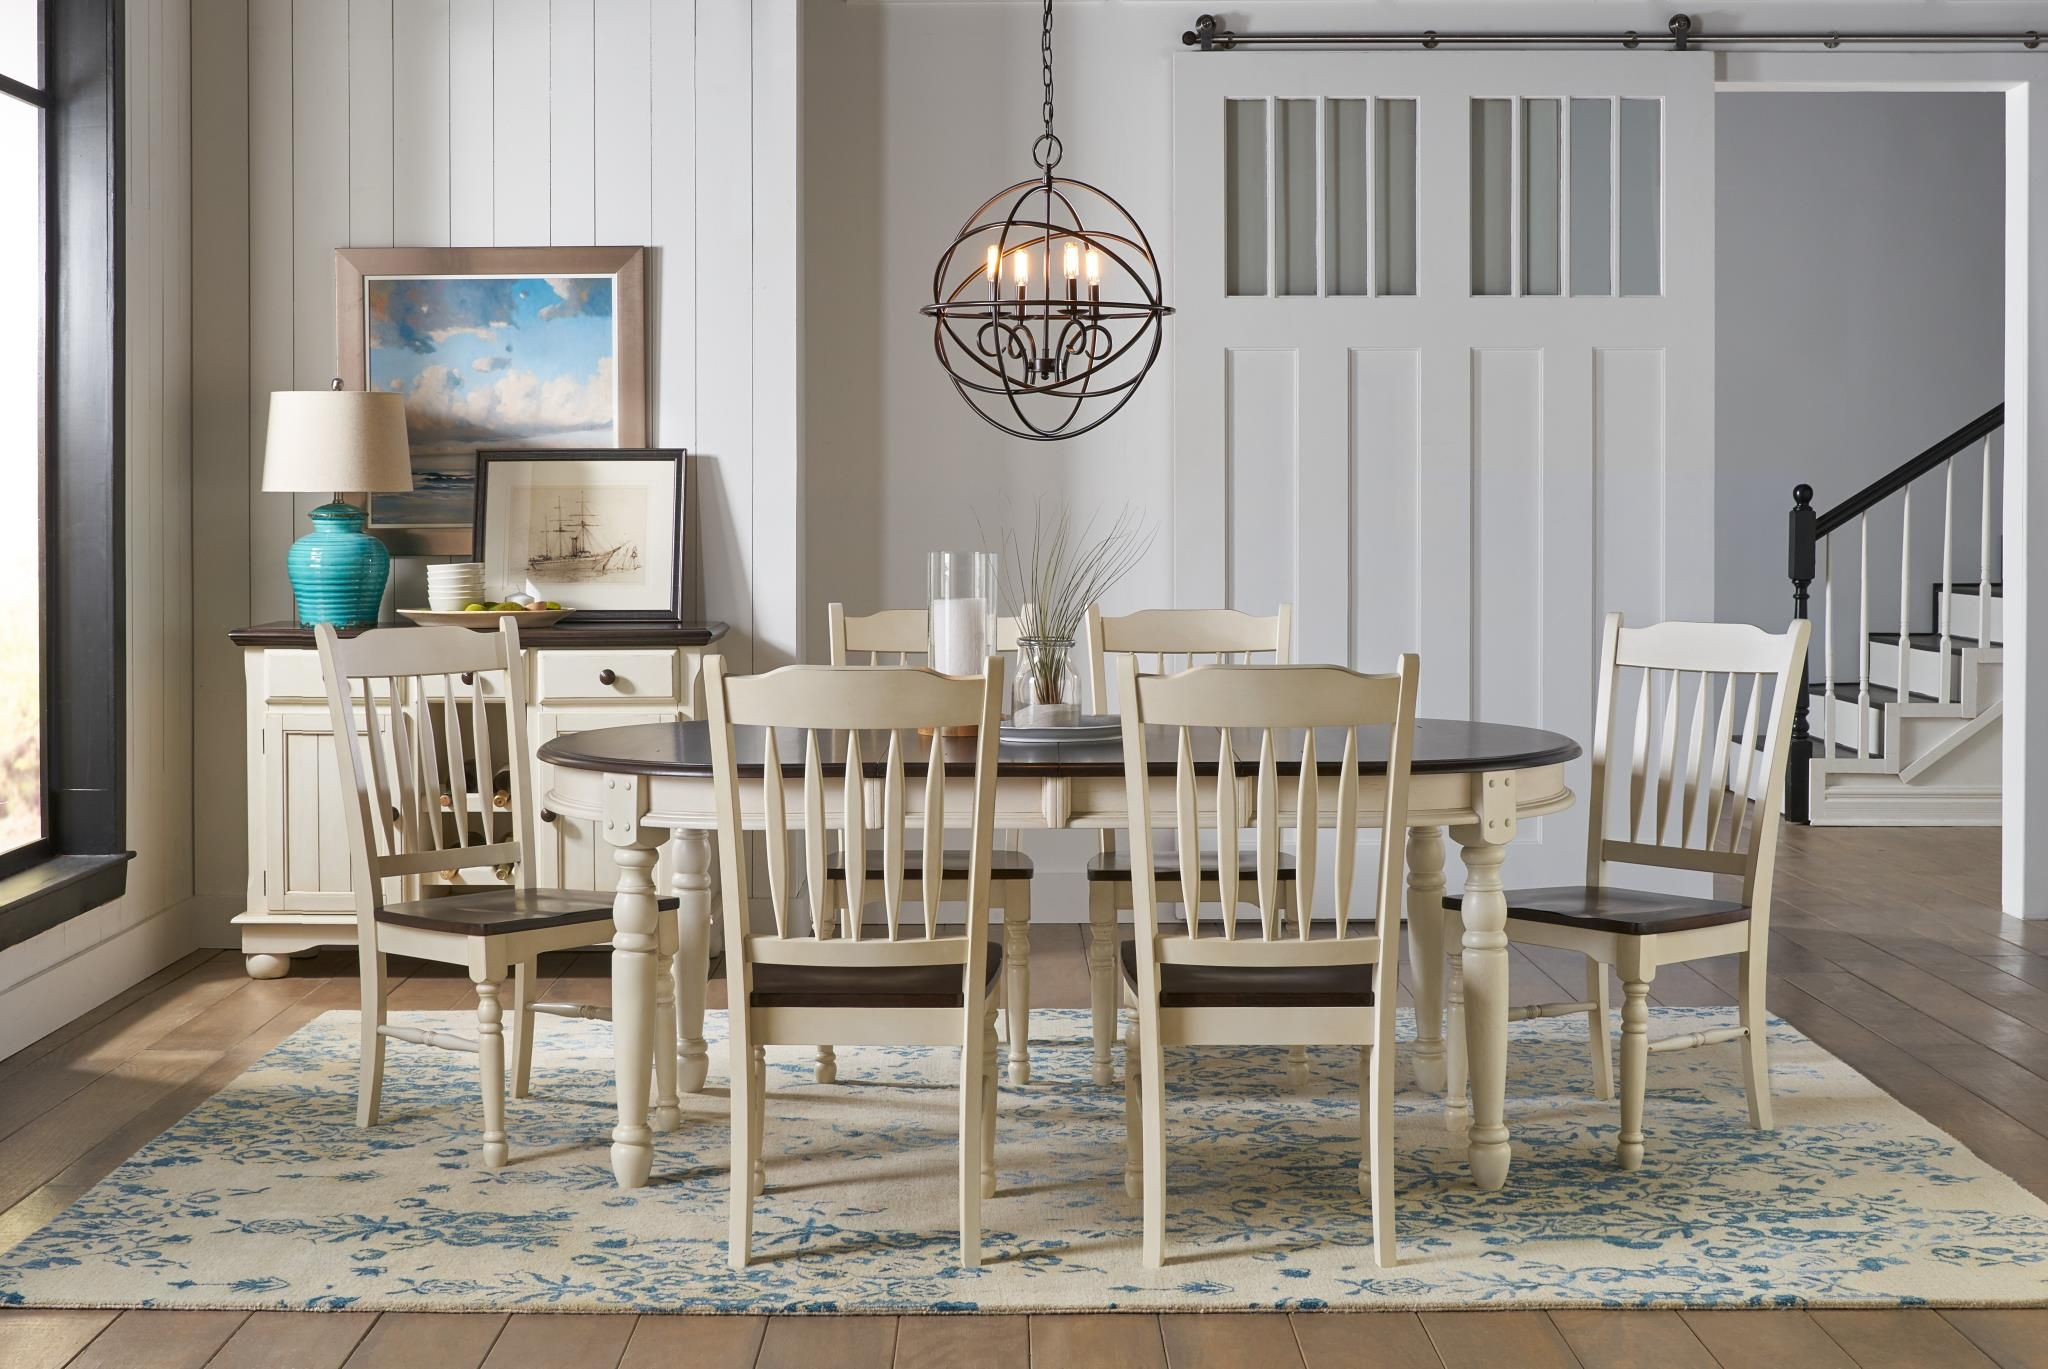 British Isles Dining Collection by AAmerica. AAmerica